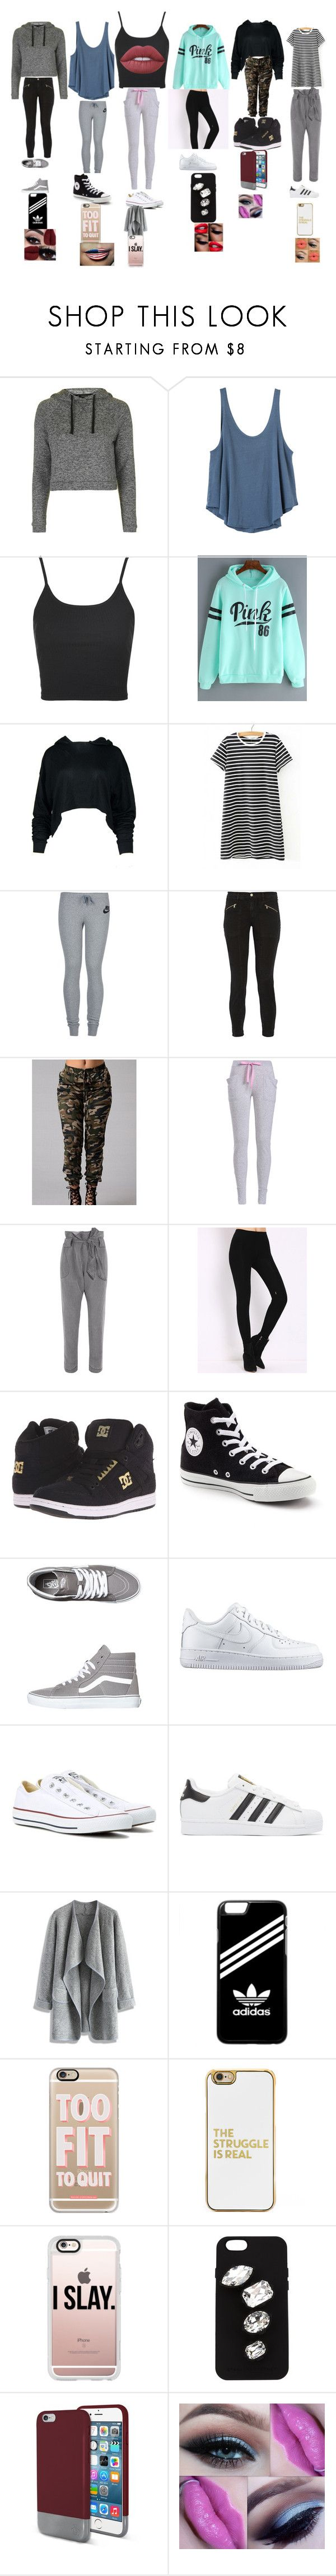 """just random outfits"" by jtbae ❤ liked on Polyvore featuring Topshop, RVCA, WithChic, NIKE, J Brand, Vivienne Westwood Anglomania, DC Shoes, Converse, Vans and adidas Originals"